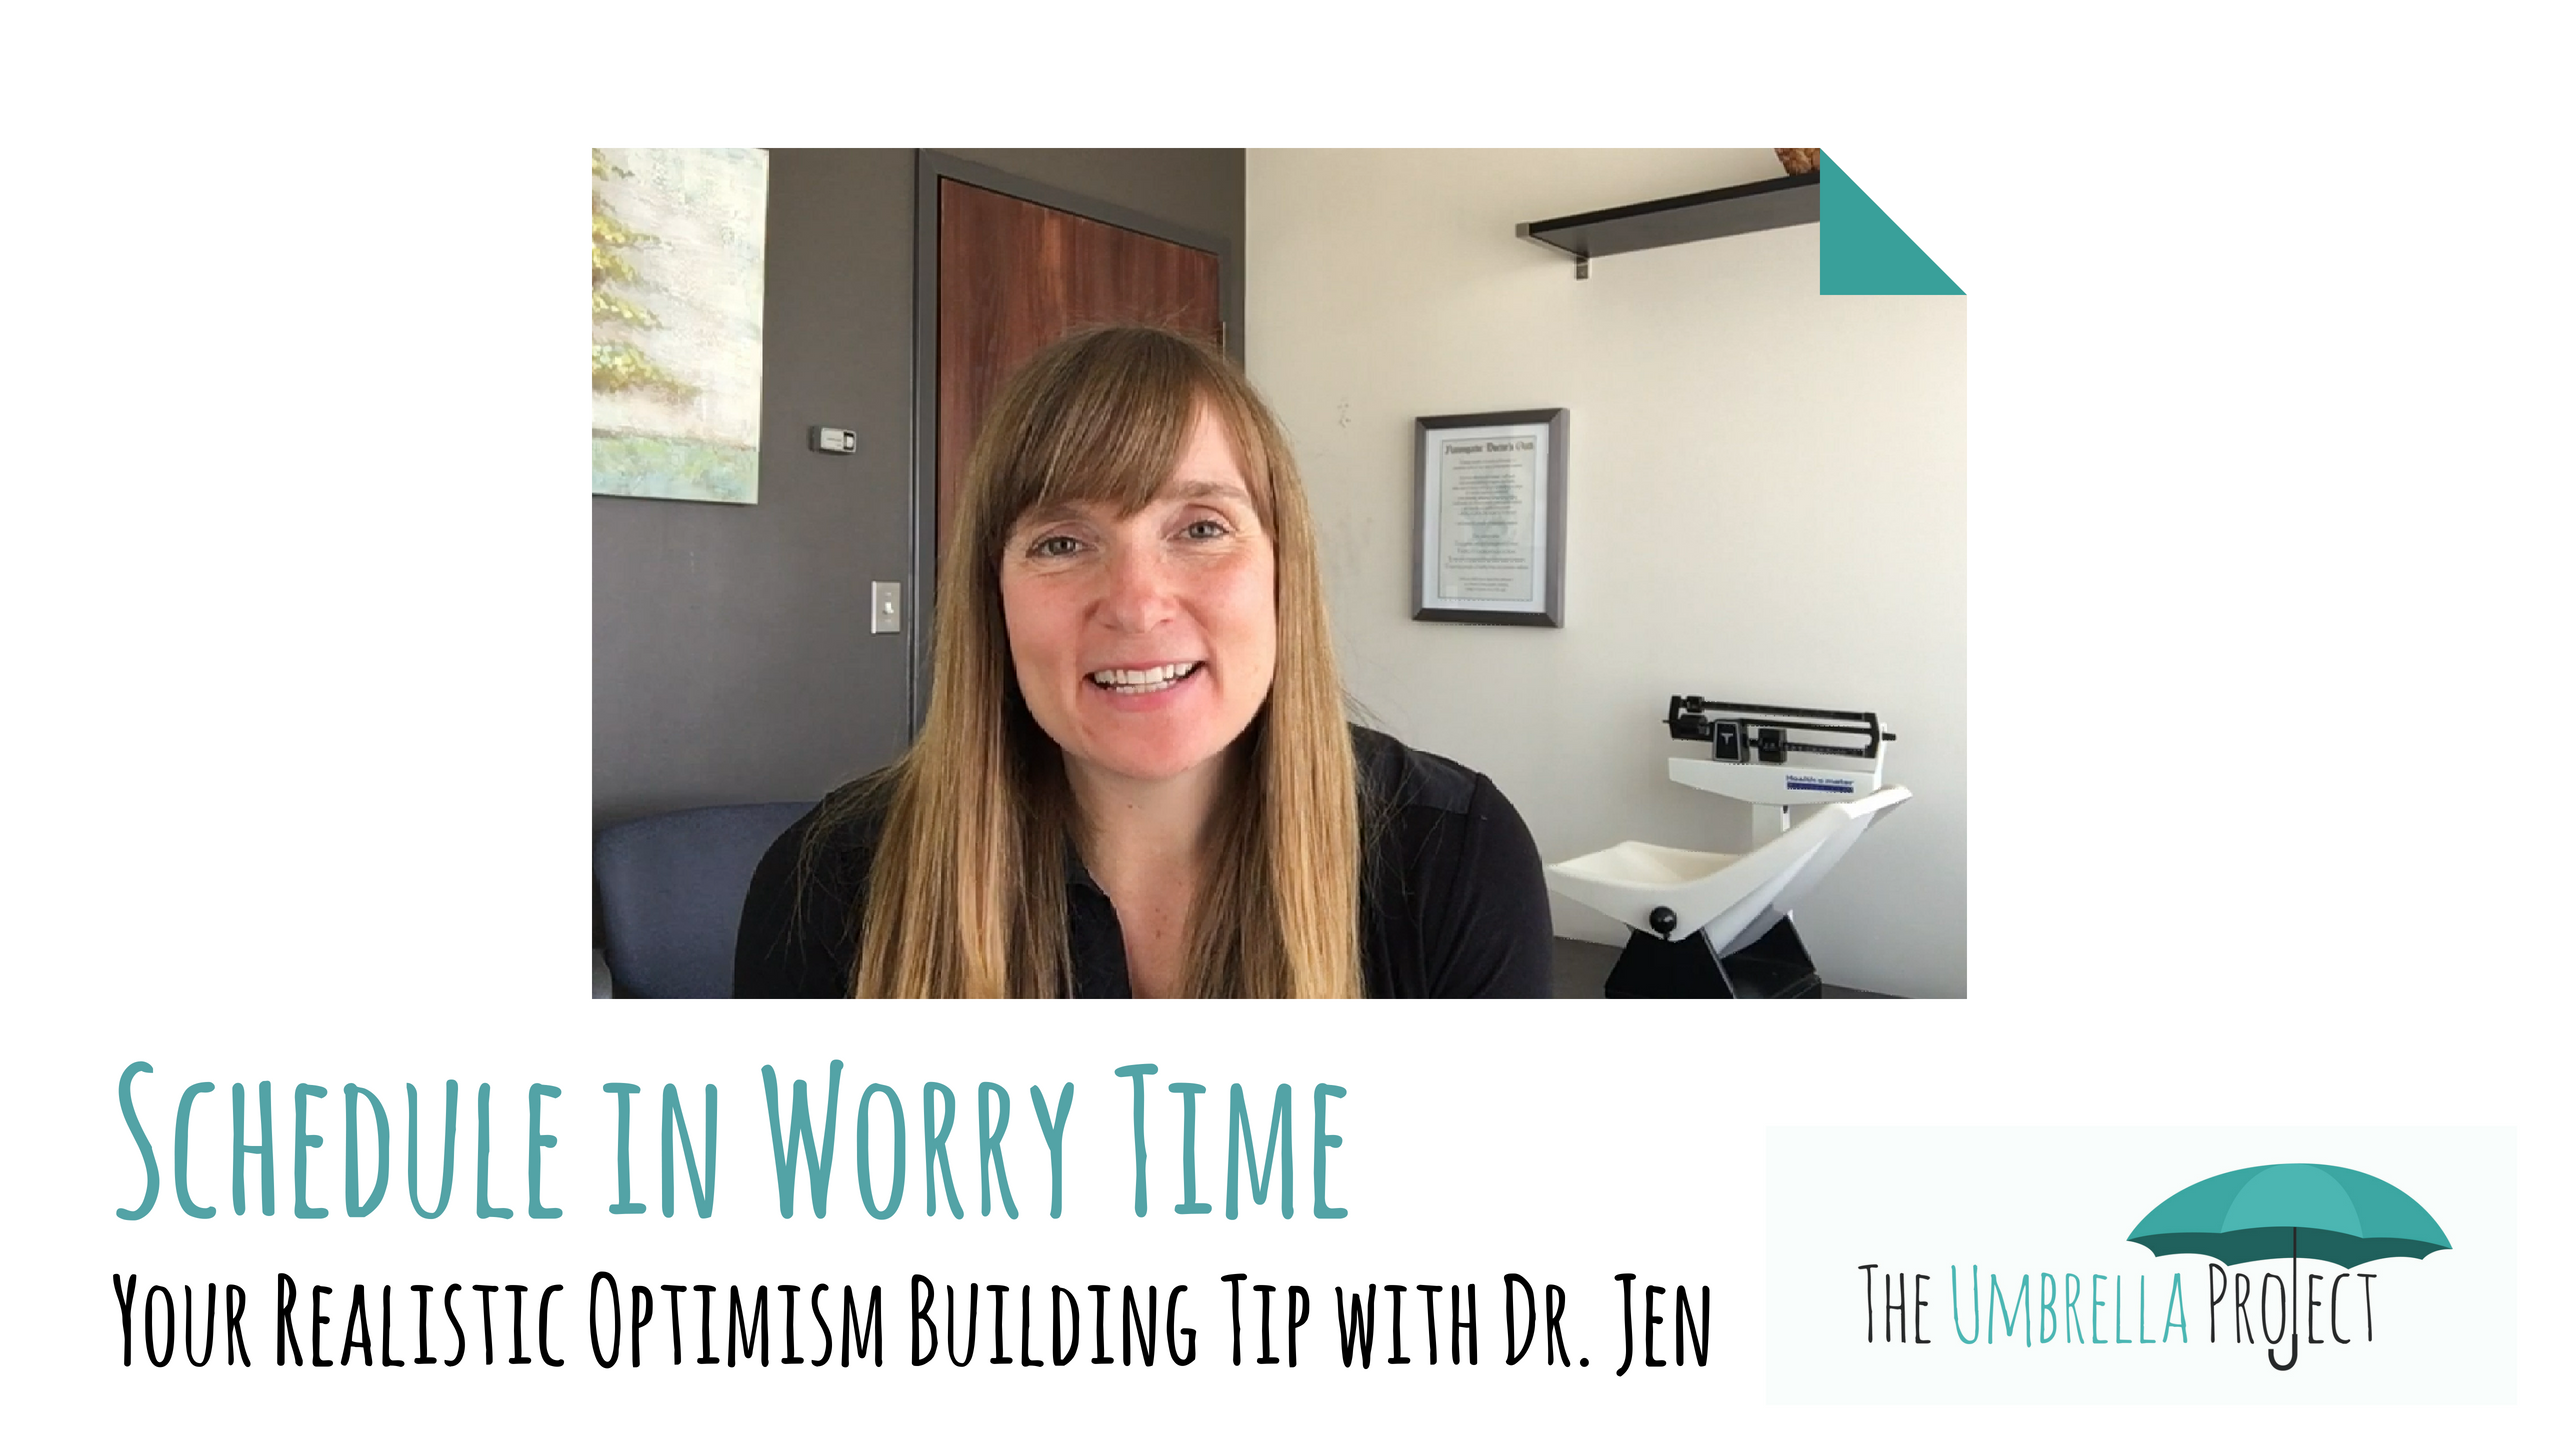 Schedule in Worry Time: Your Realistic Optimism Building Tip with Dr. Jen